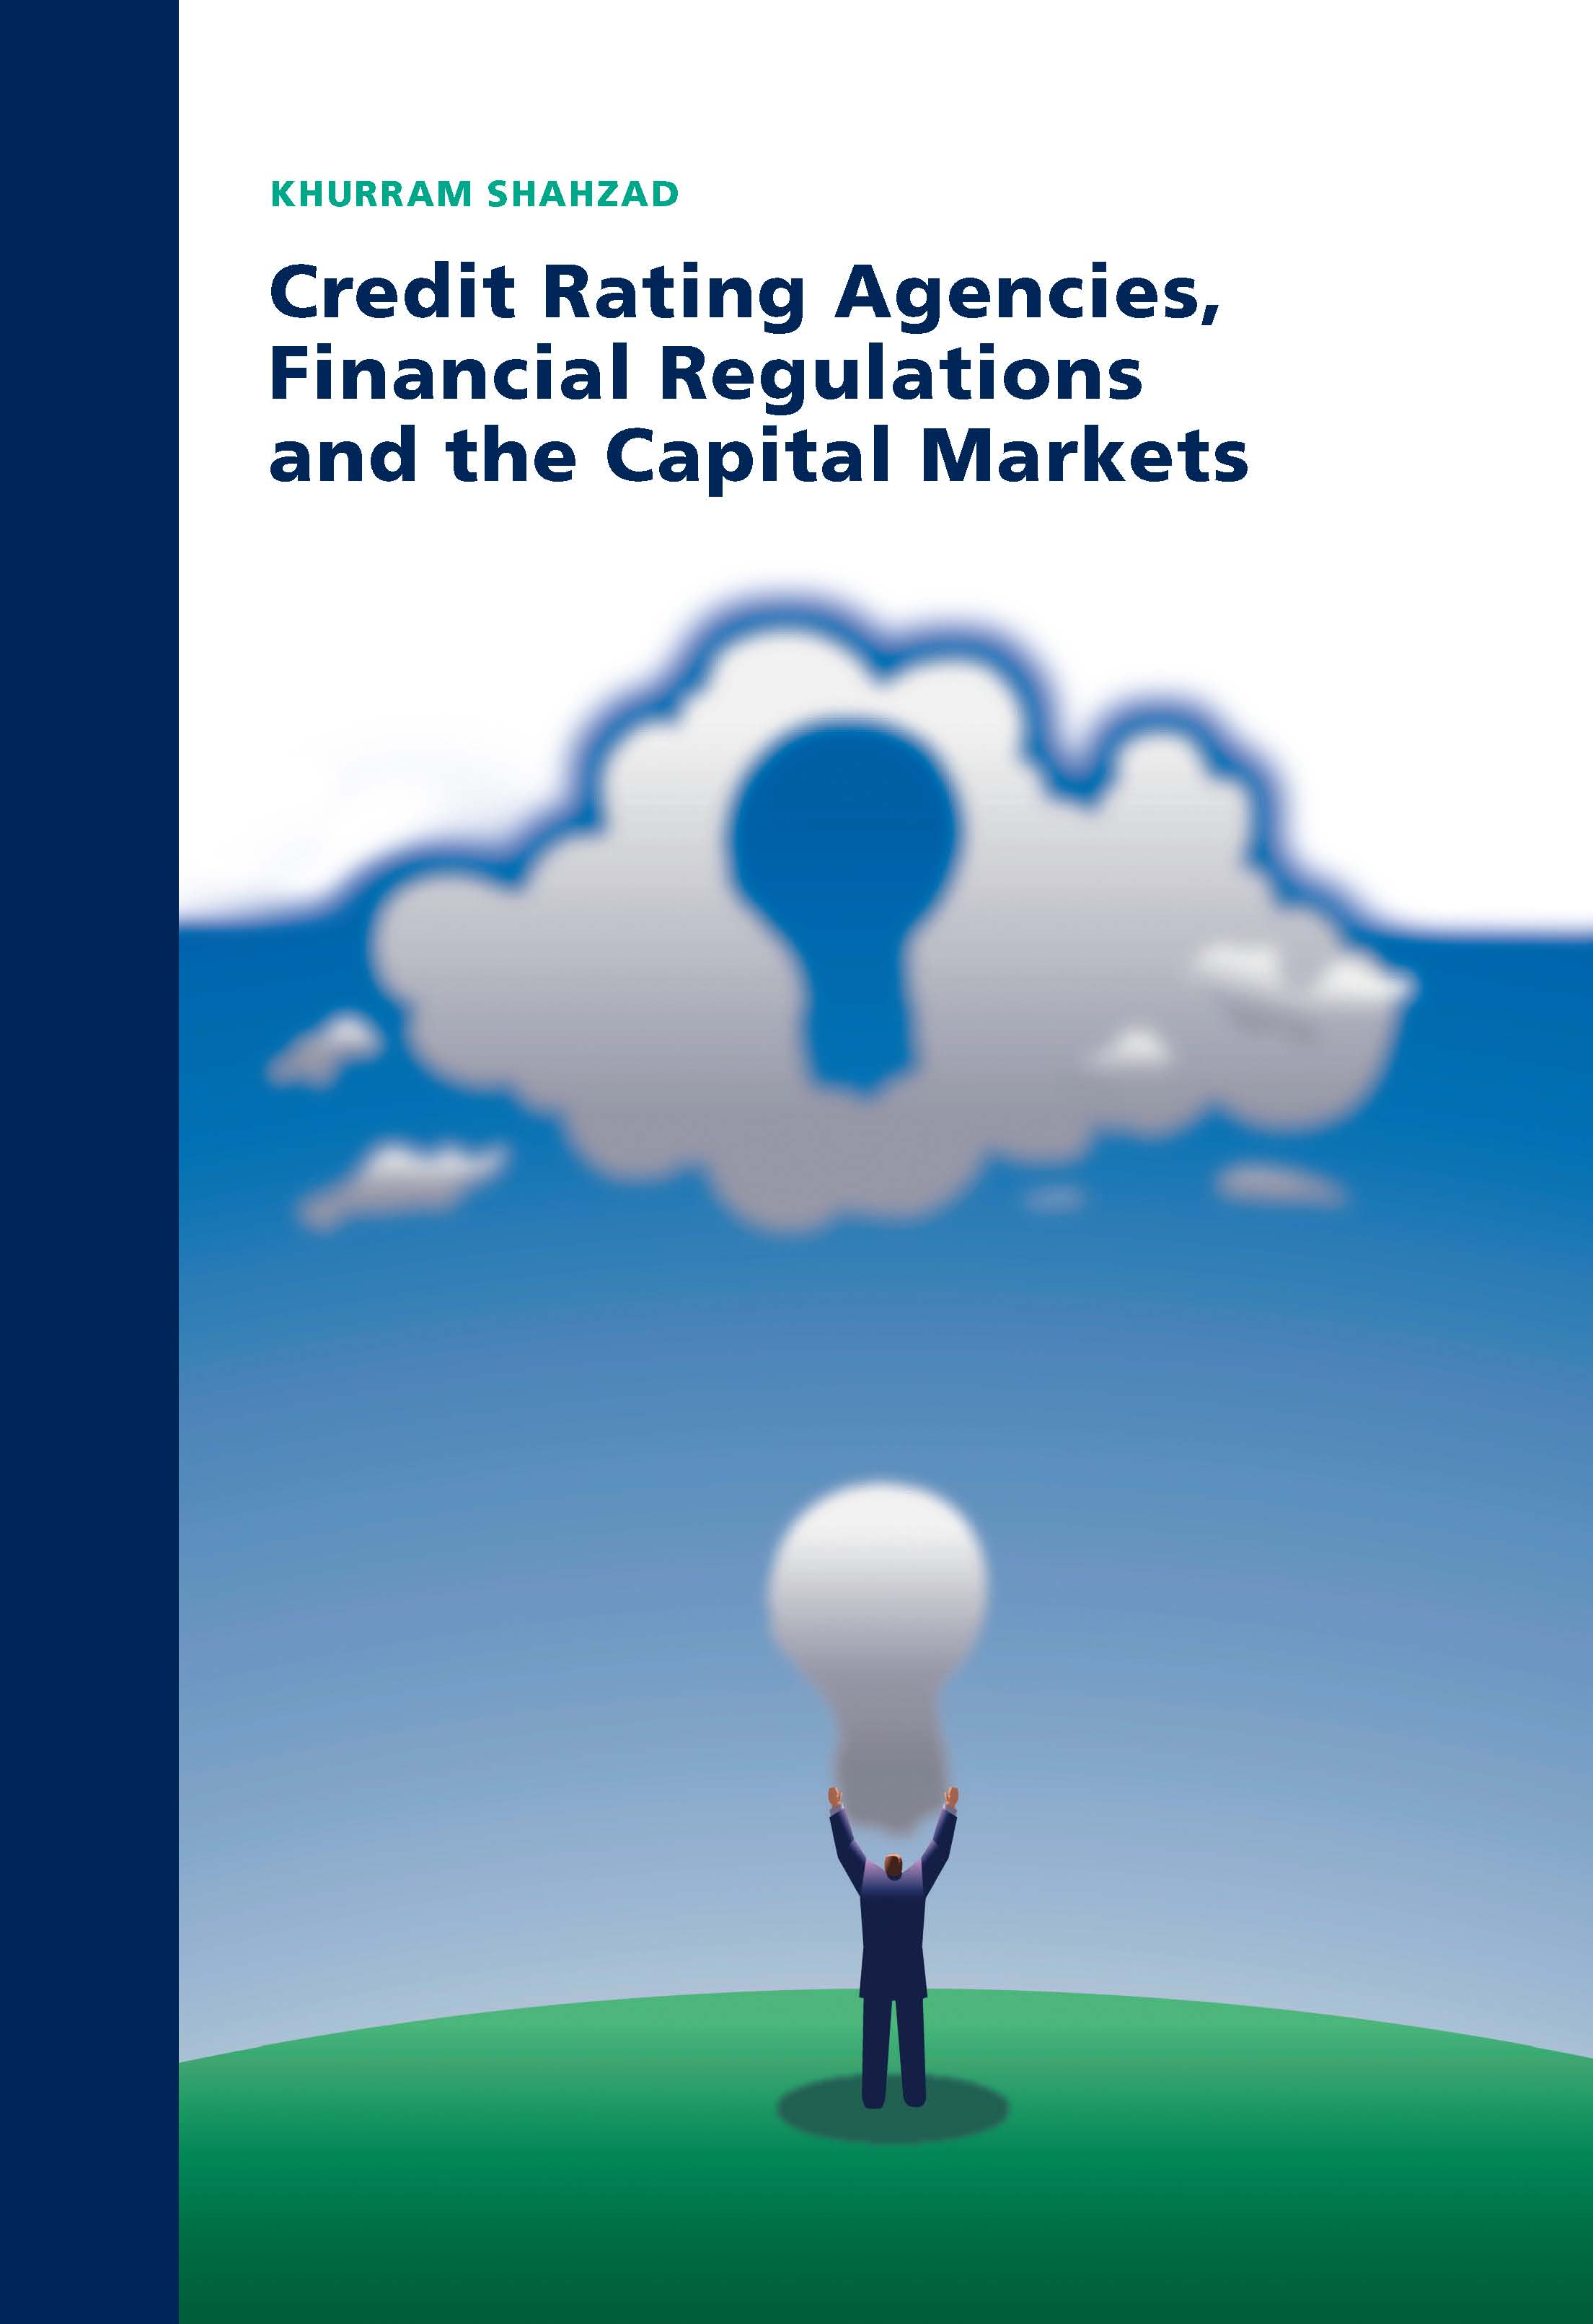 Credit Rating Agencies, Financial Regulations and the Capital Markets